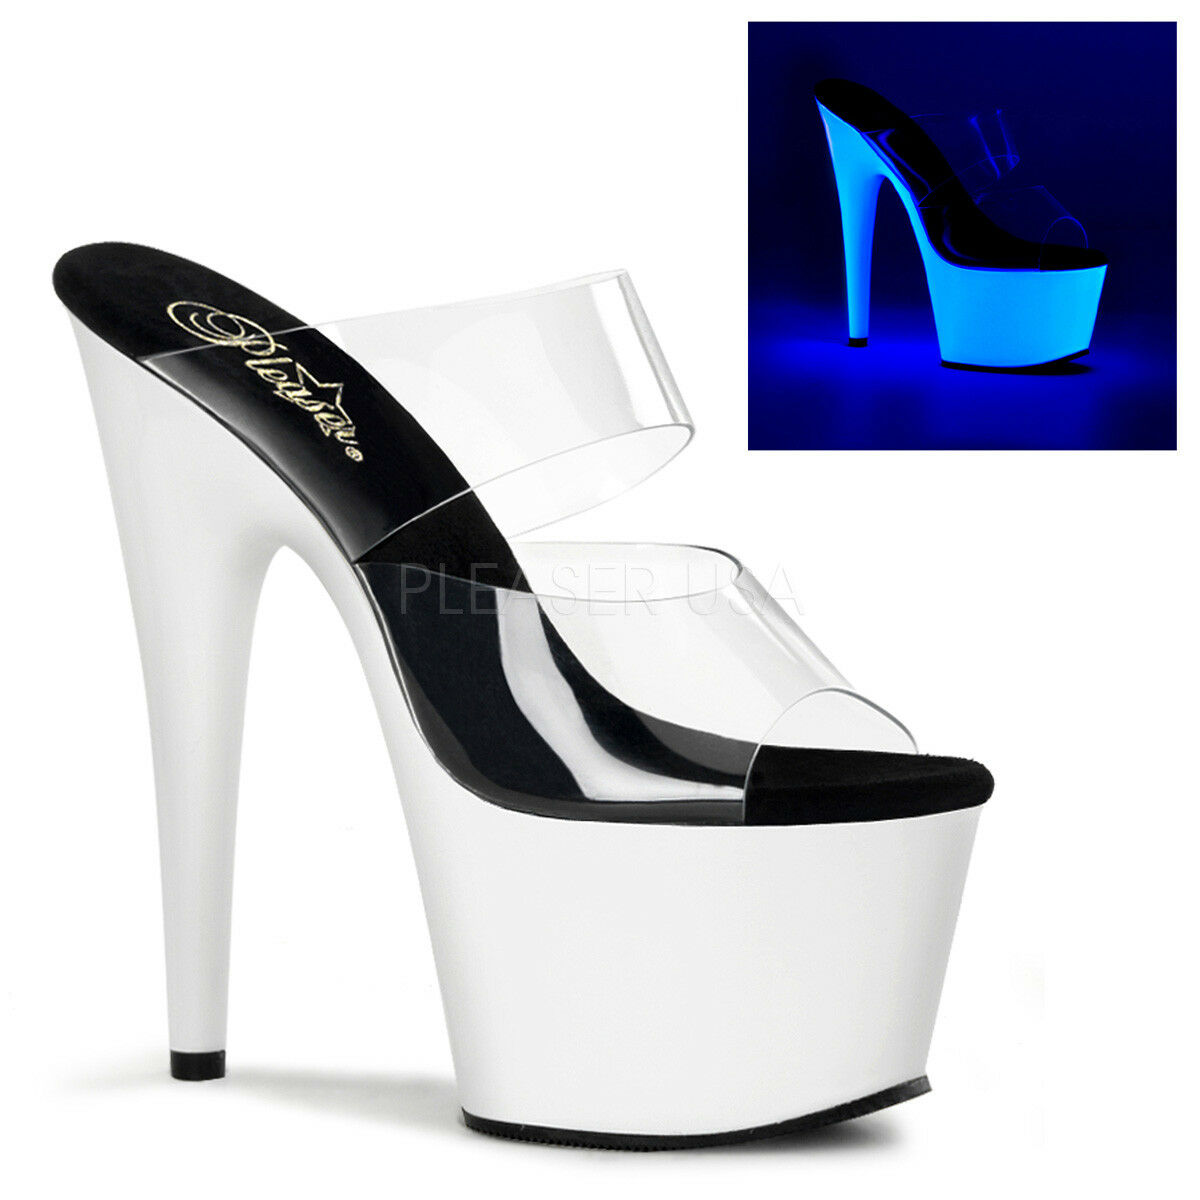 Pleaser ADORE-702UV Women's Clear Neon White High High High Heel Platform Slide On Sandals 4bbc9d